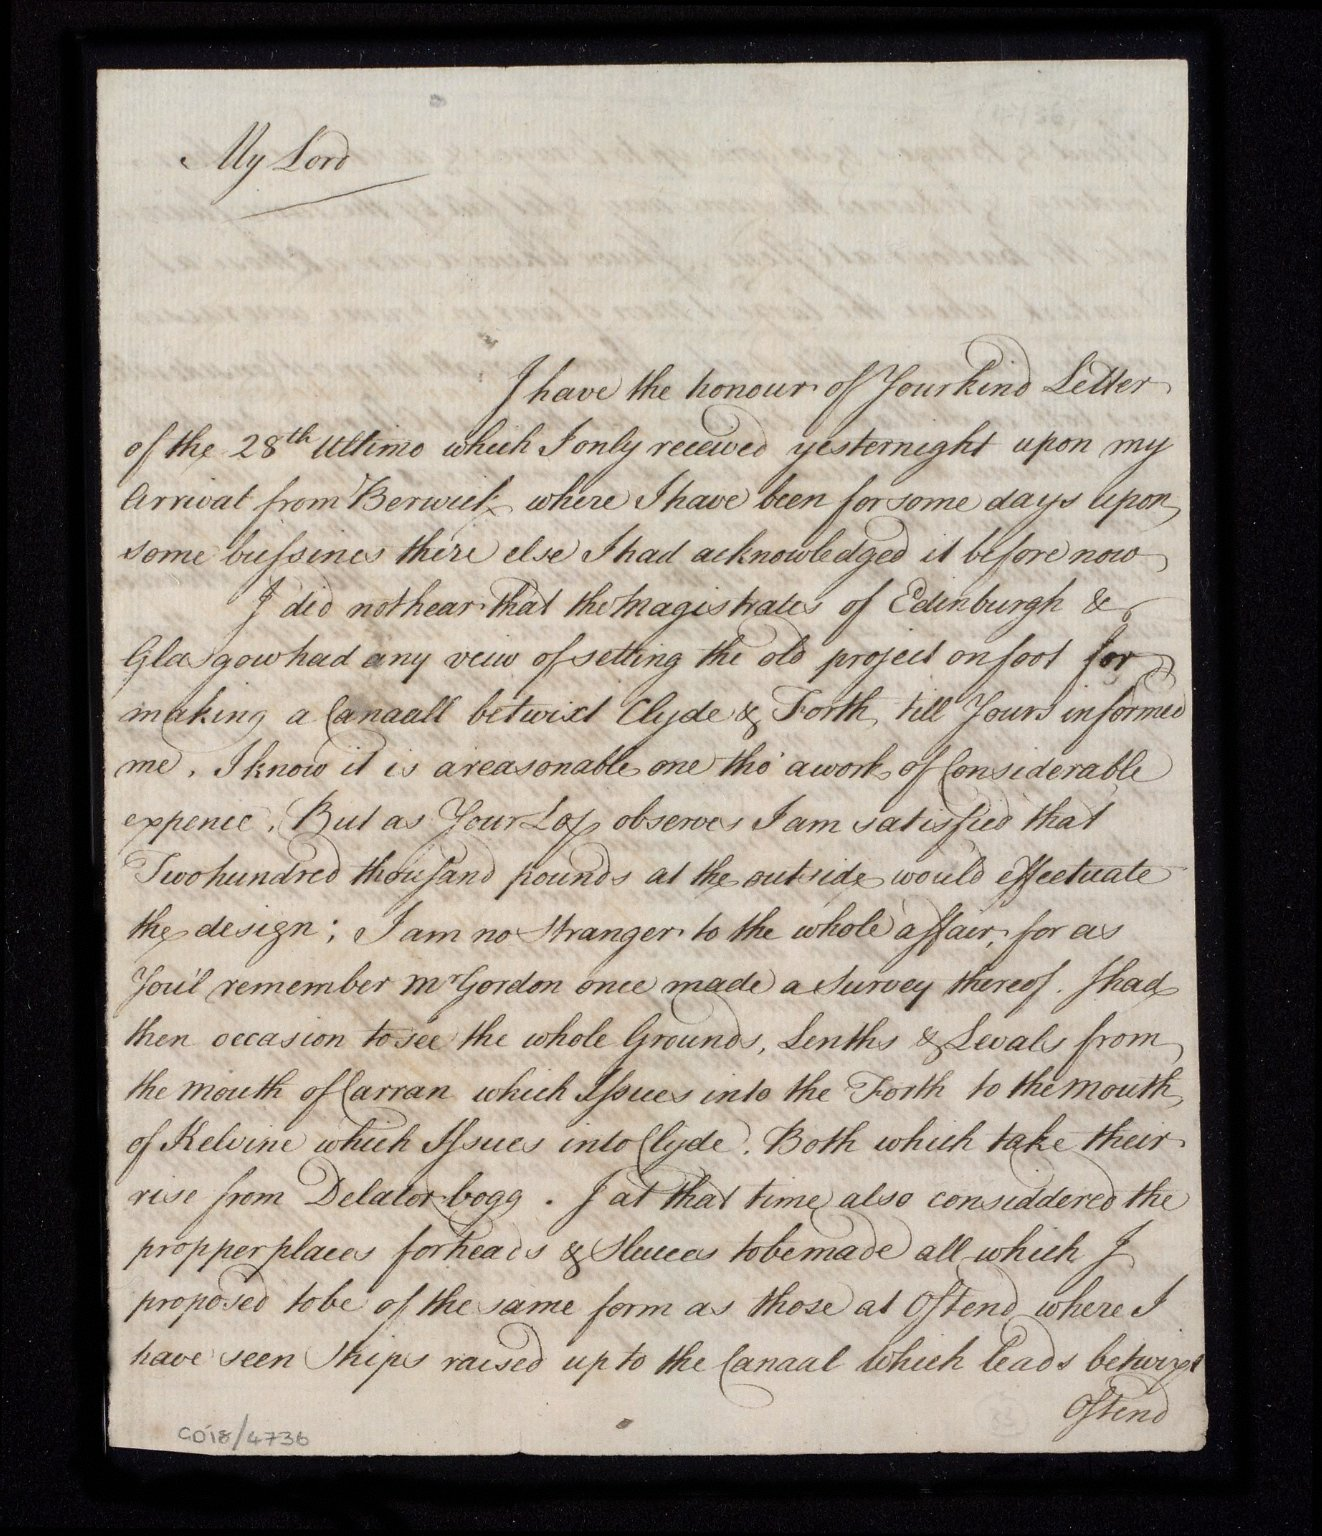 [Letter from William Adam to Sir John Clerk concerning his survey for the Forth-Clyde canal] [1 of 3]